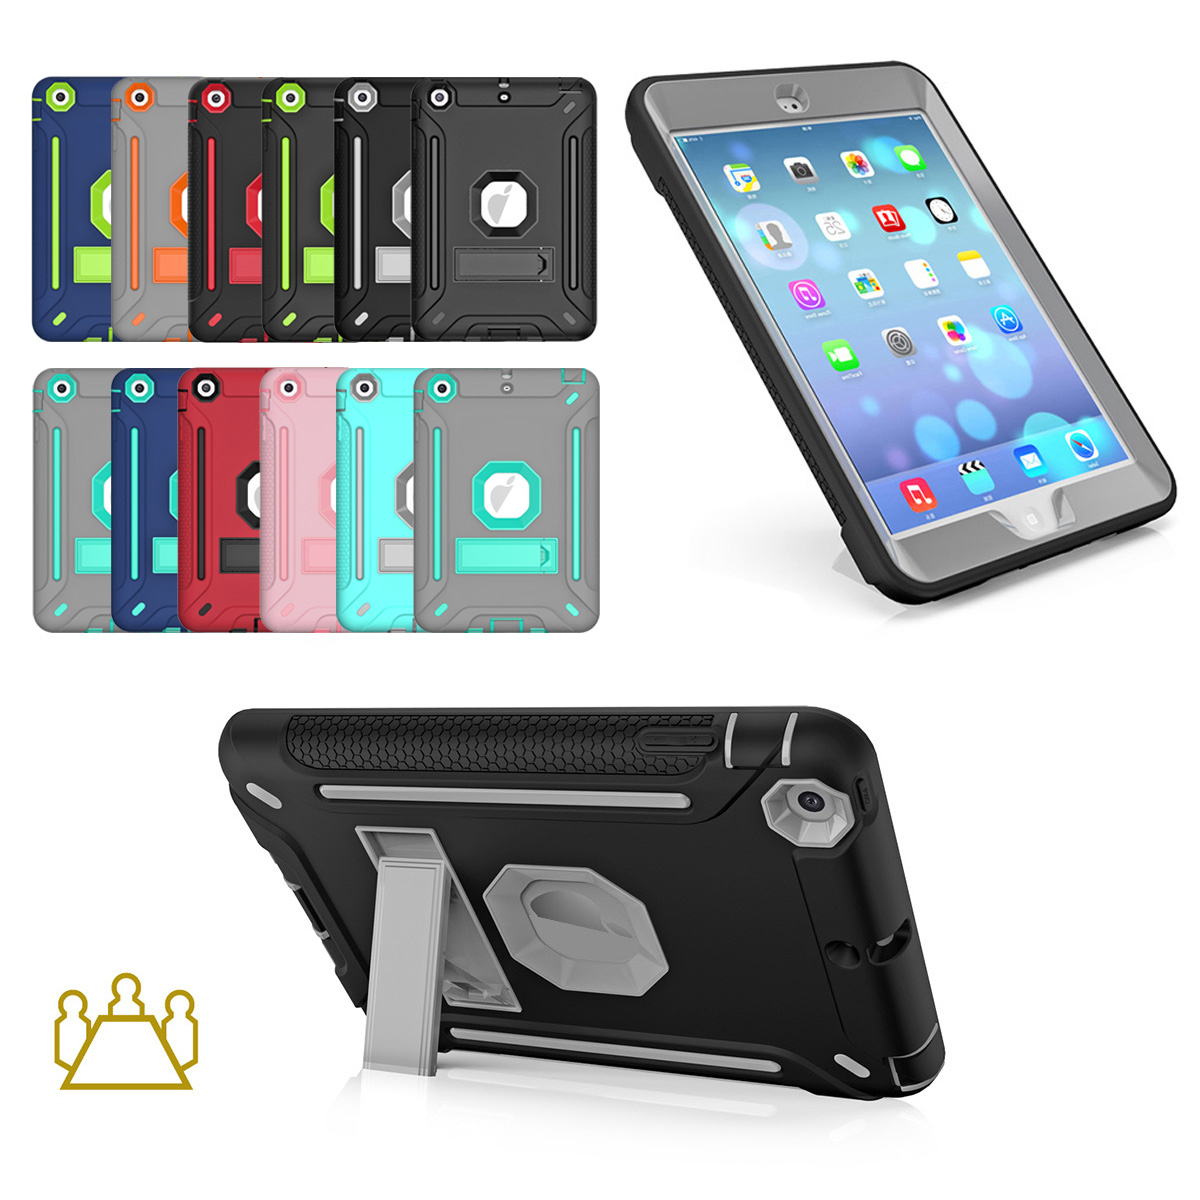 Rubber Armor Defender Silicone Case Stand Cover For iPad min